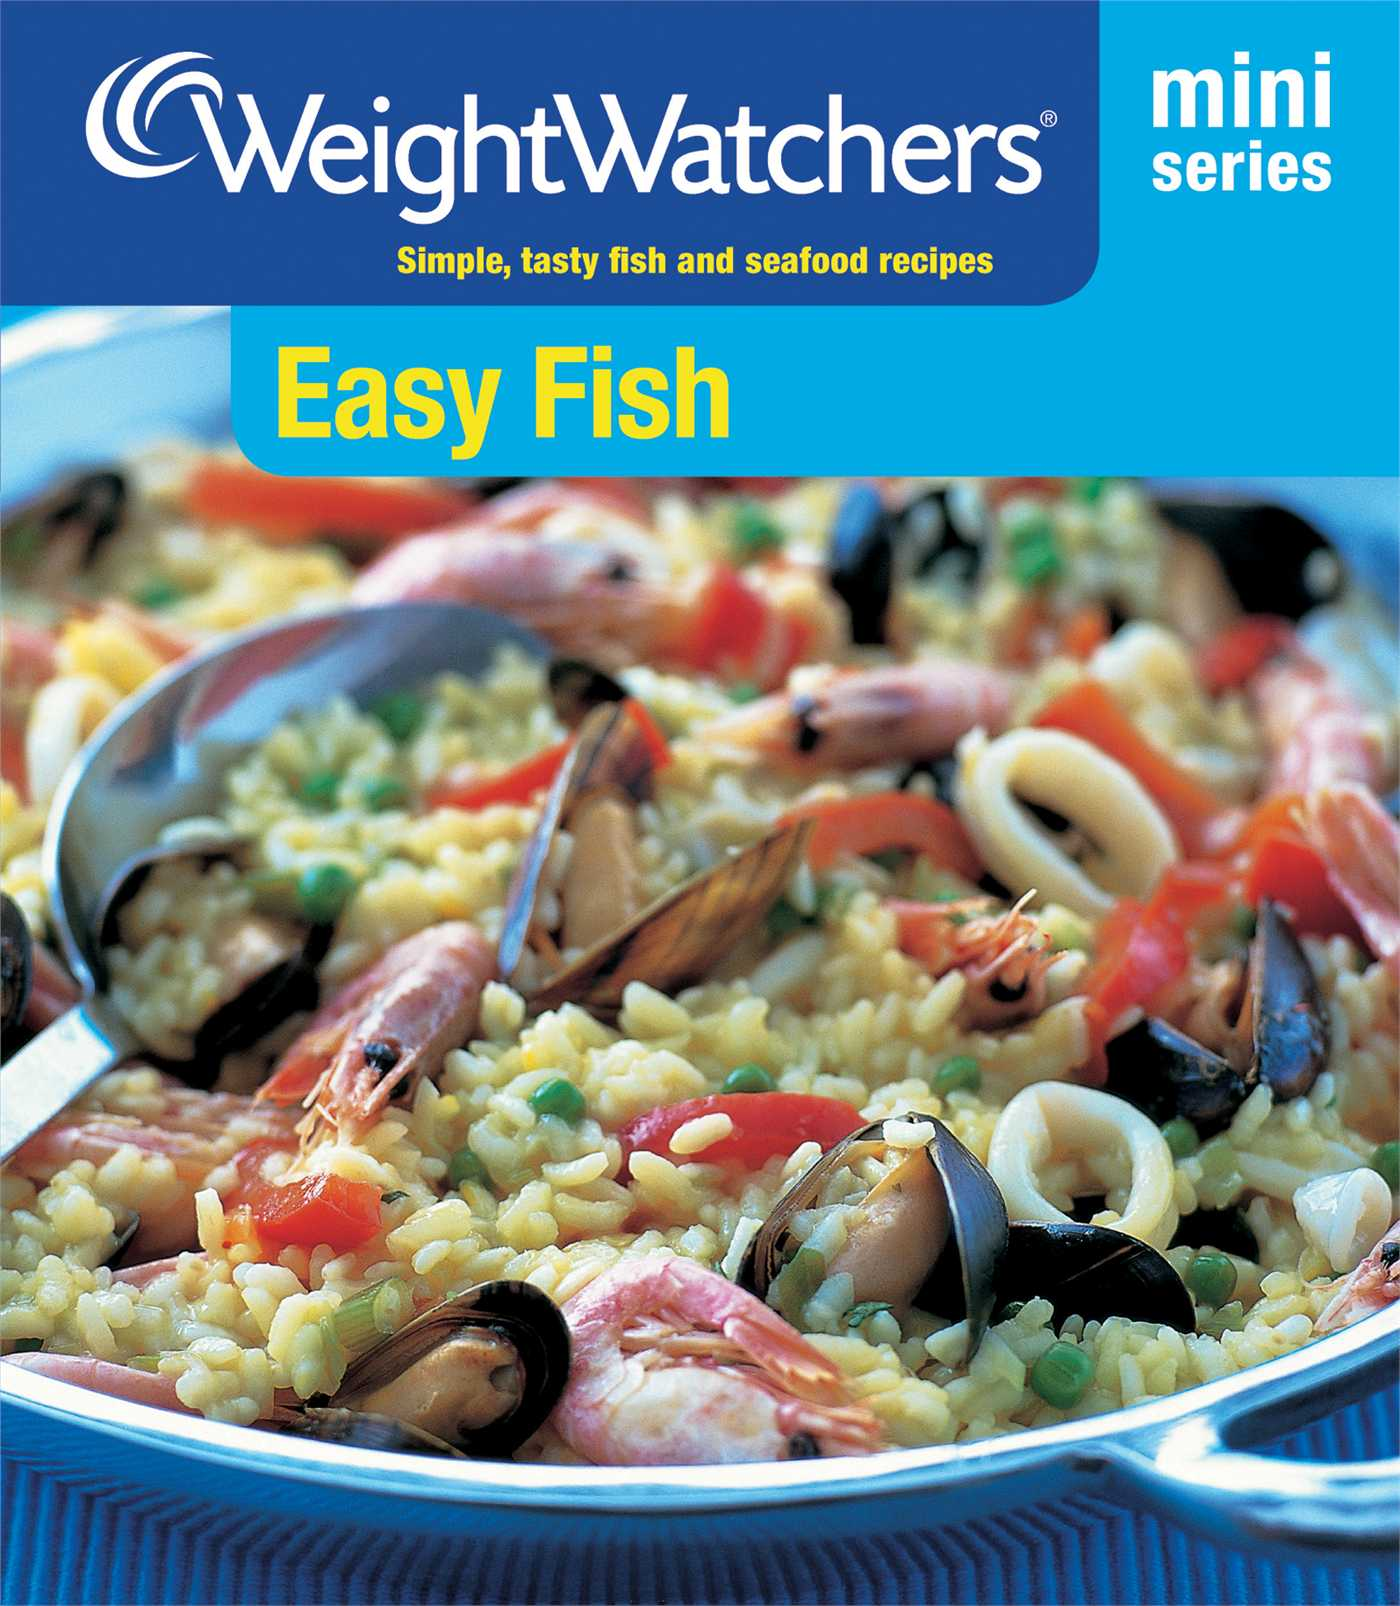 Weight-watchers-mini-series-easy-fish-9781471110849_hr